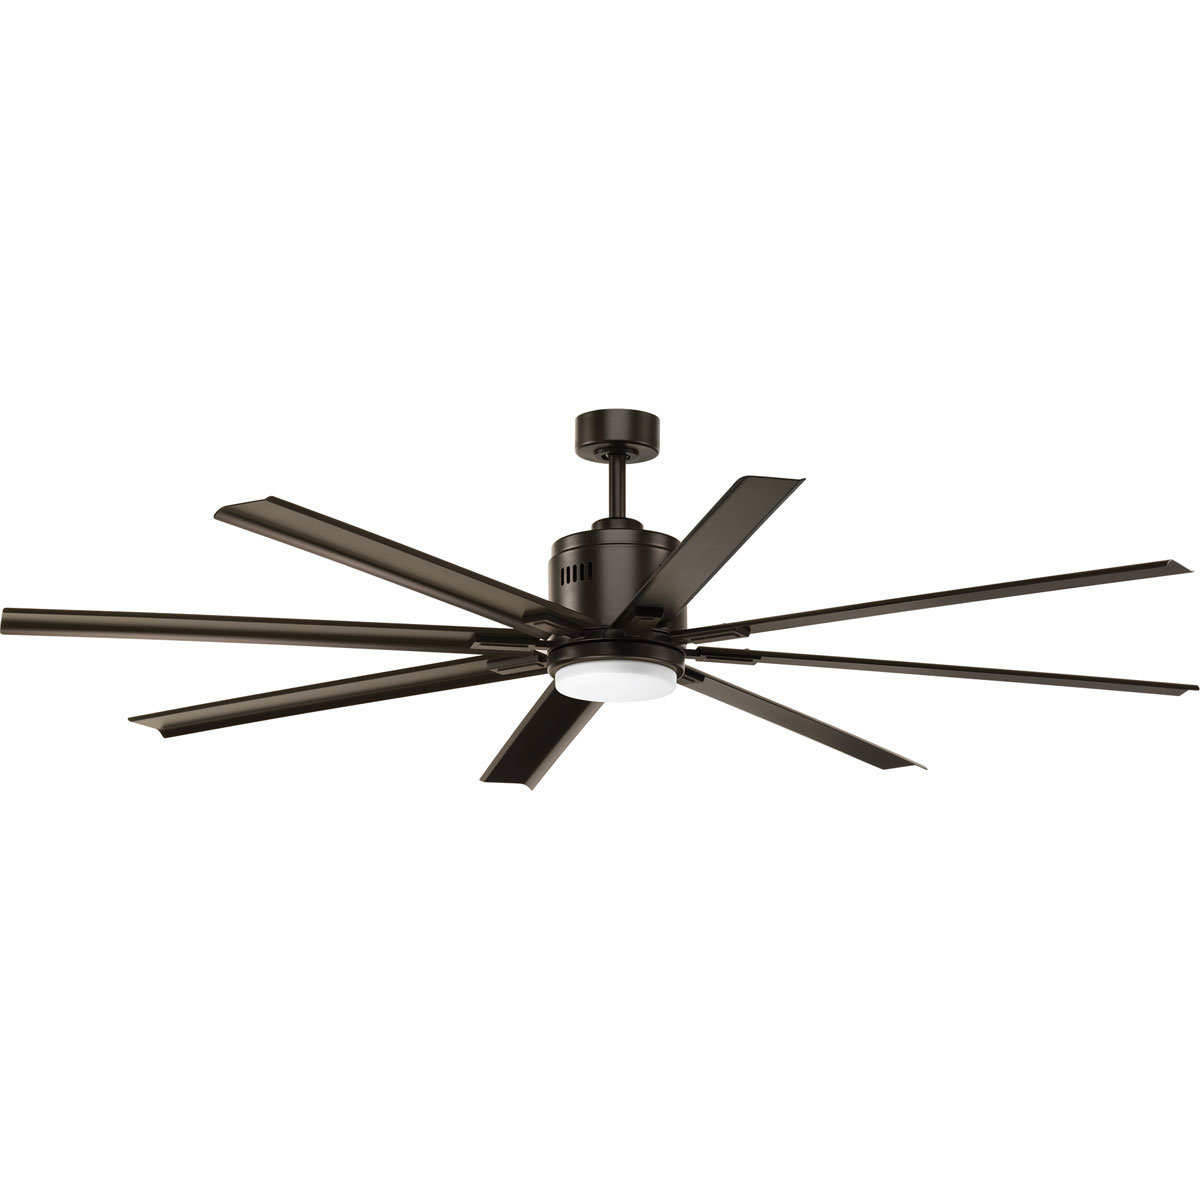 "Fashionable Bankston 8 Blade Led Ceiling Fans With Regard To 72"" Bankston 8 Blade Led Ceiling Fan With Remote, Light Kit Included (View 2 of 20)"